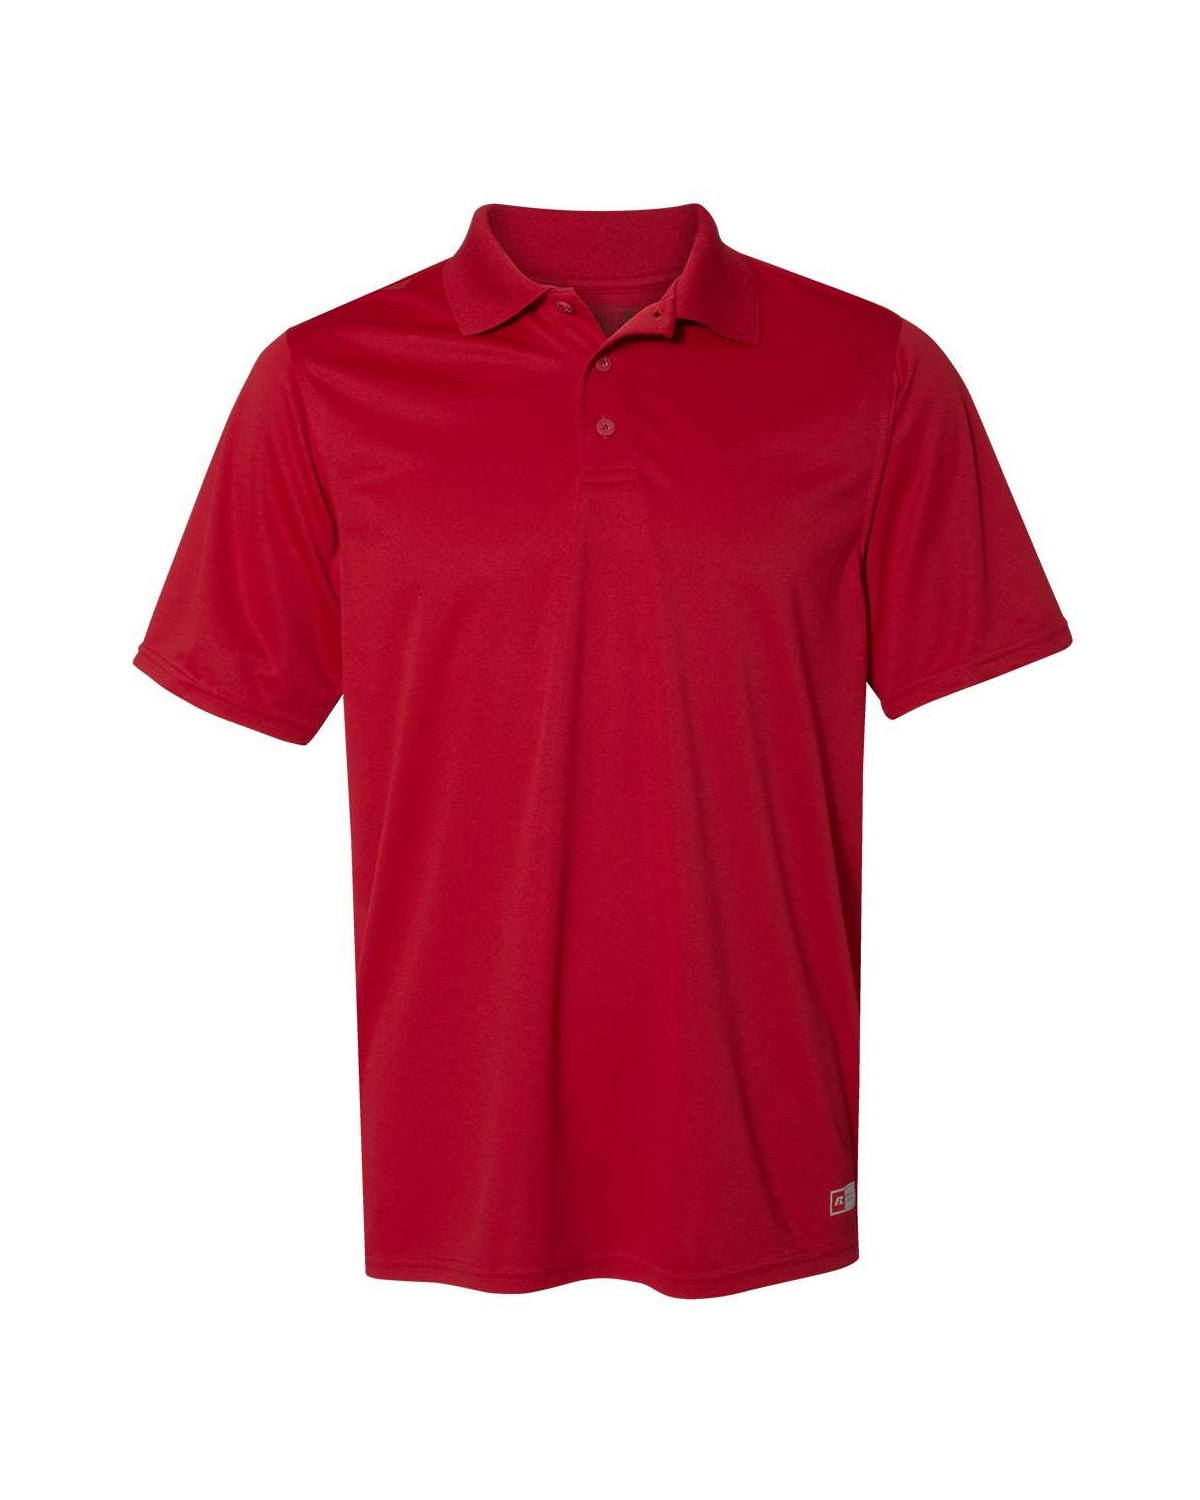 7EPTUM Russell Athletic TRUE RED